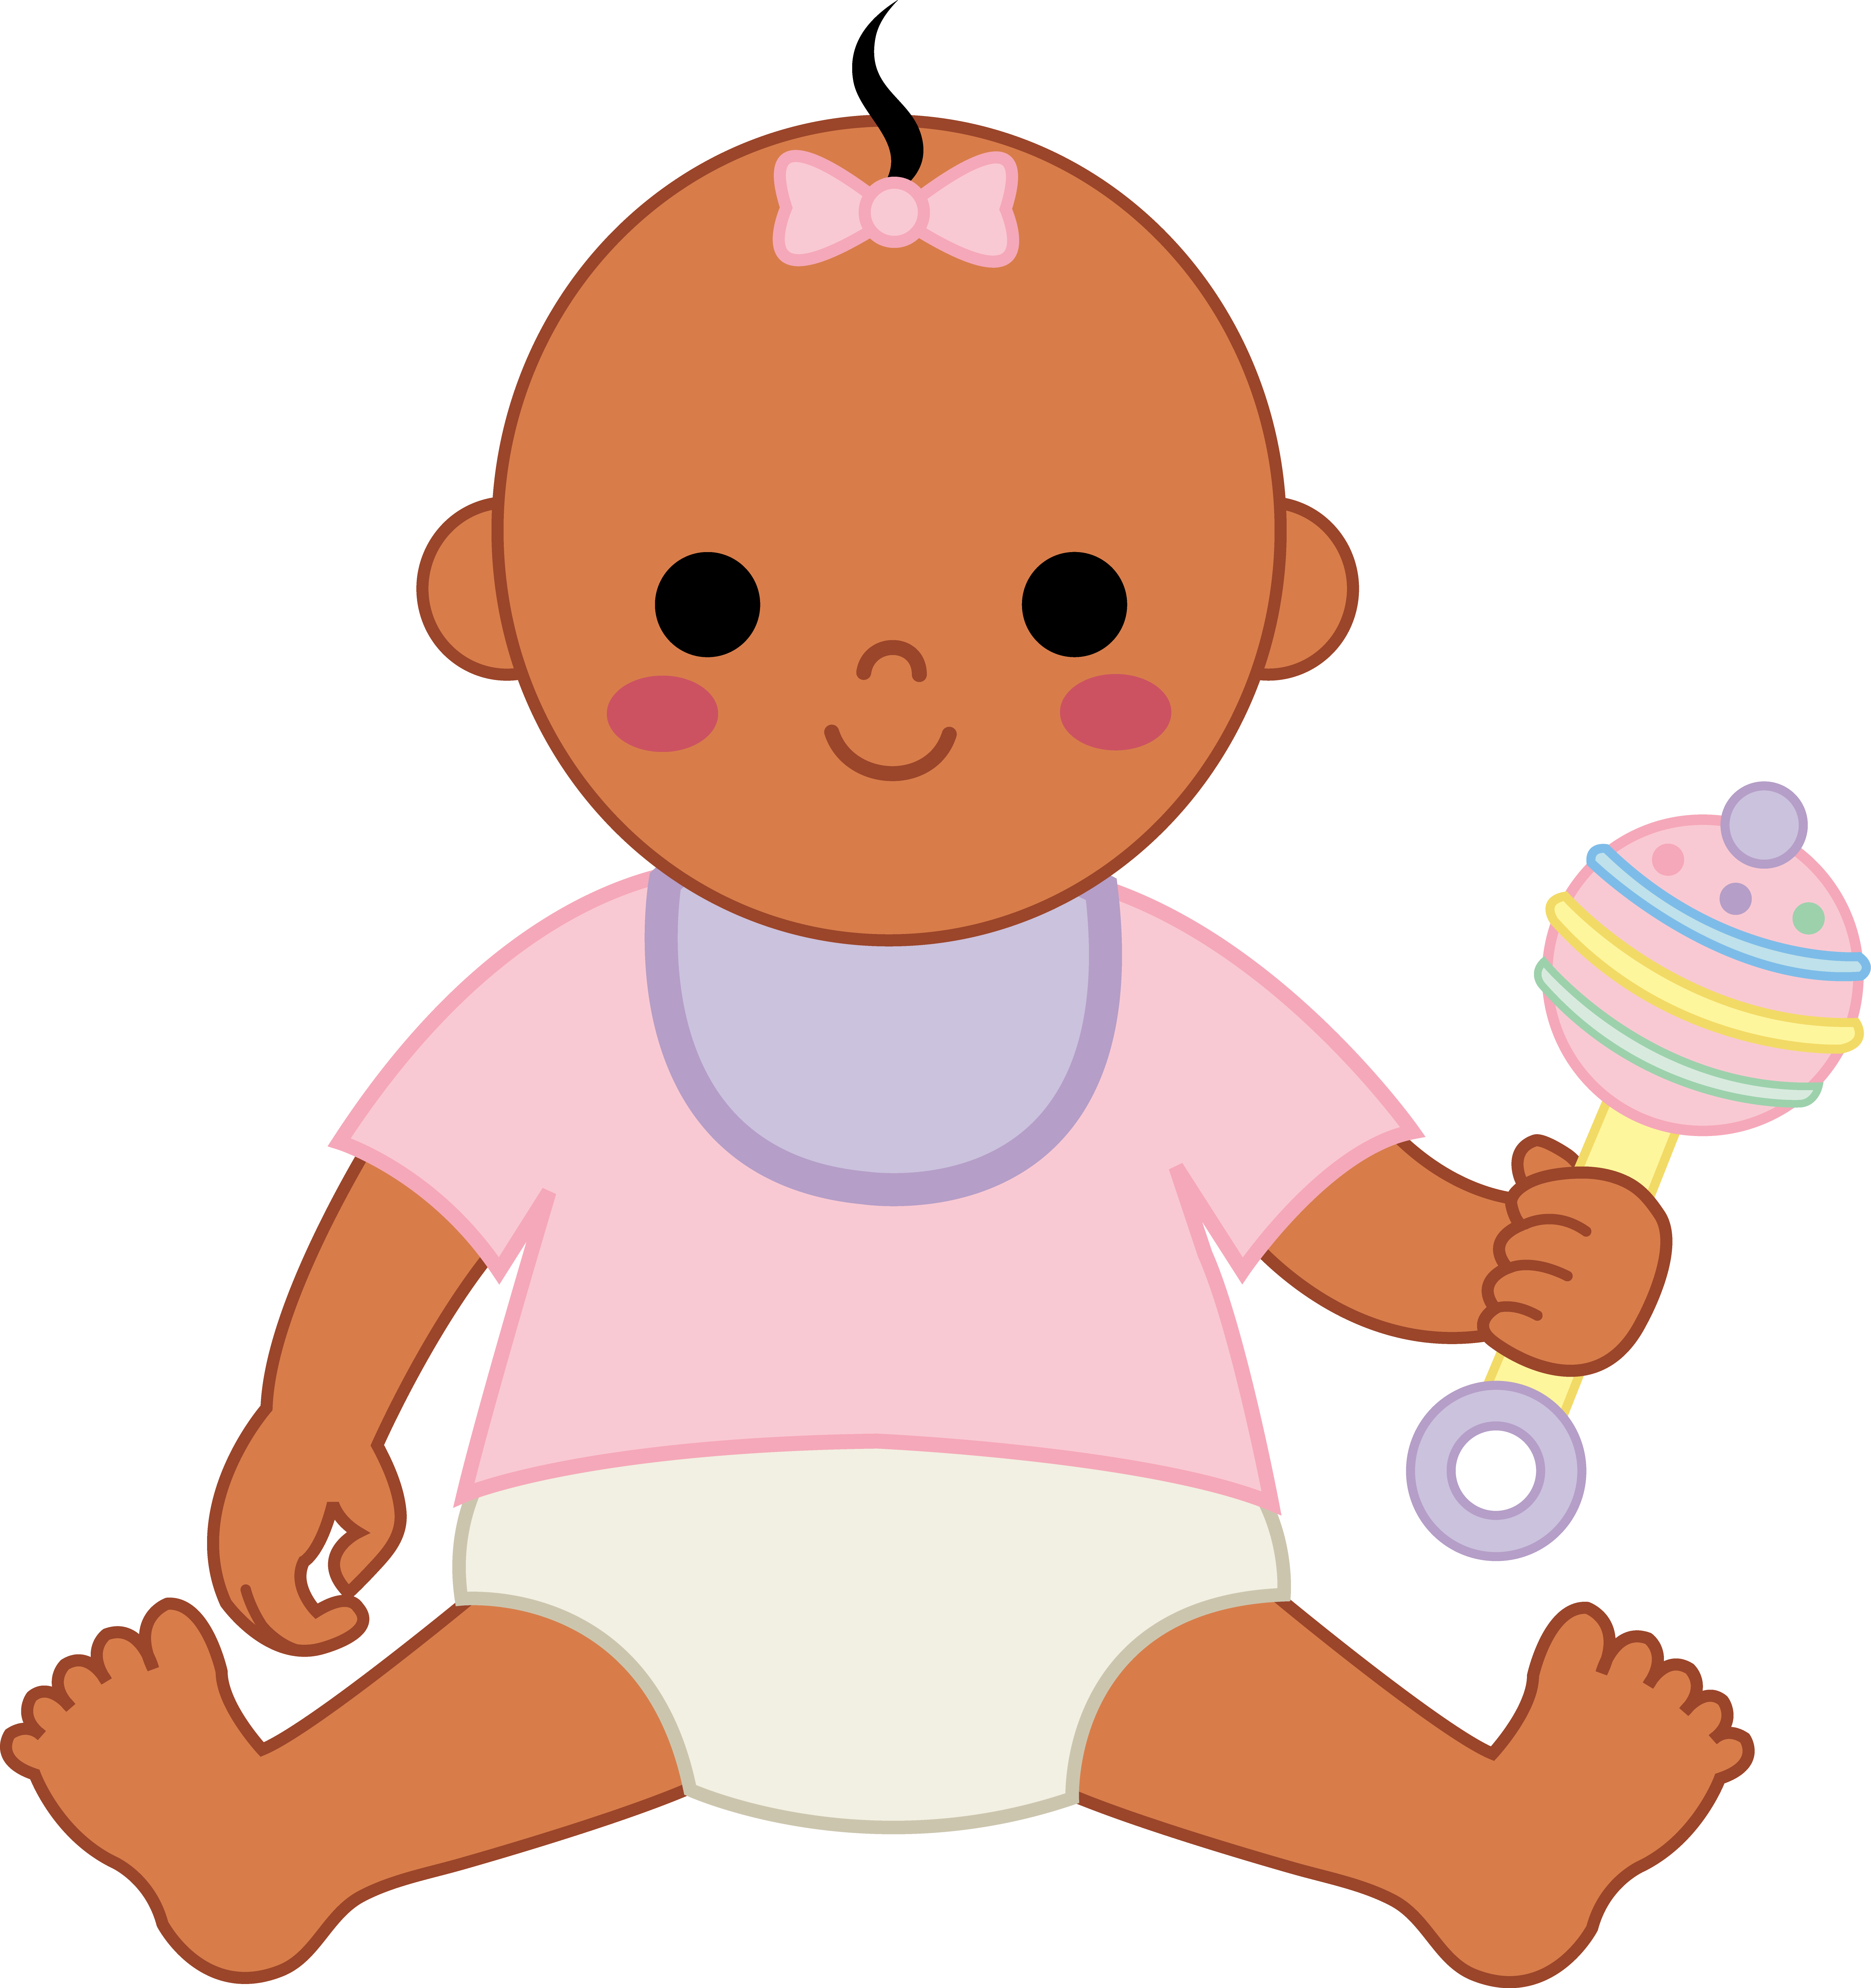 baby girl 2 free clip art clipart panda free clipart images rh clipartpanda com free baby girl clipart images free clipart images baby feet